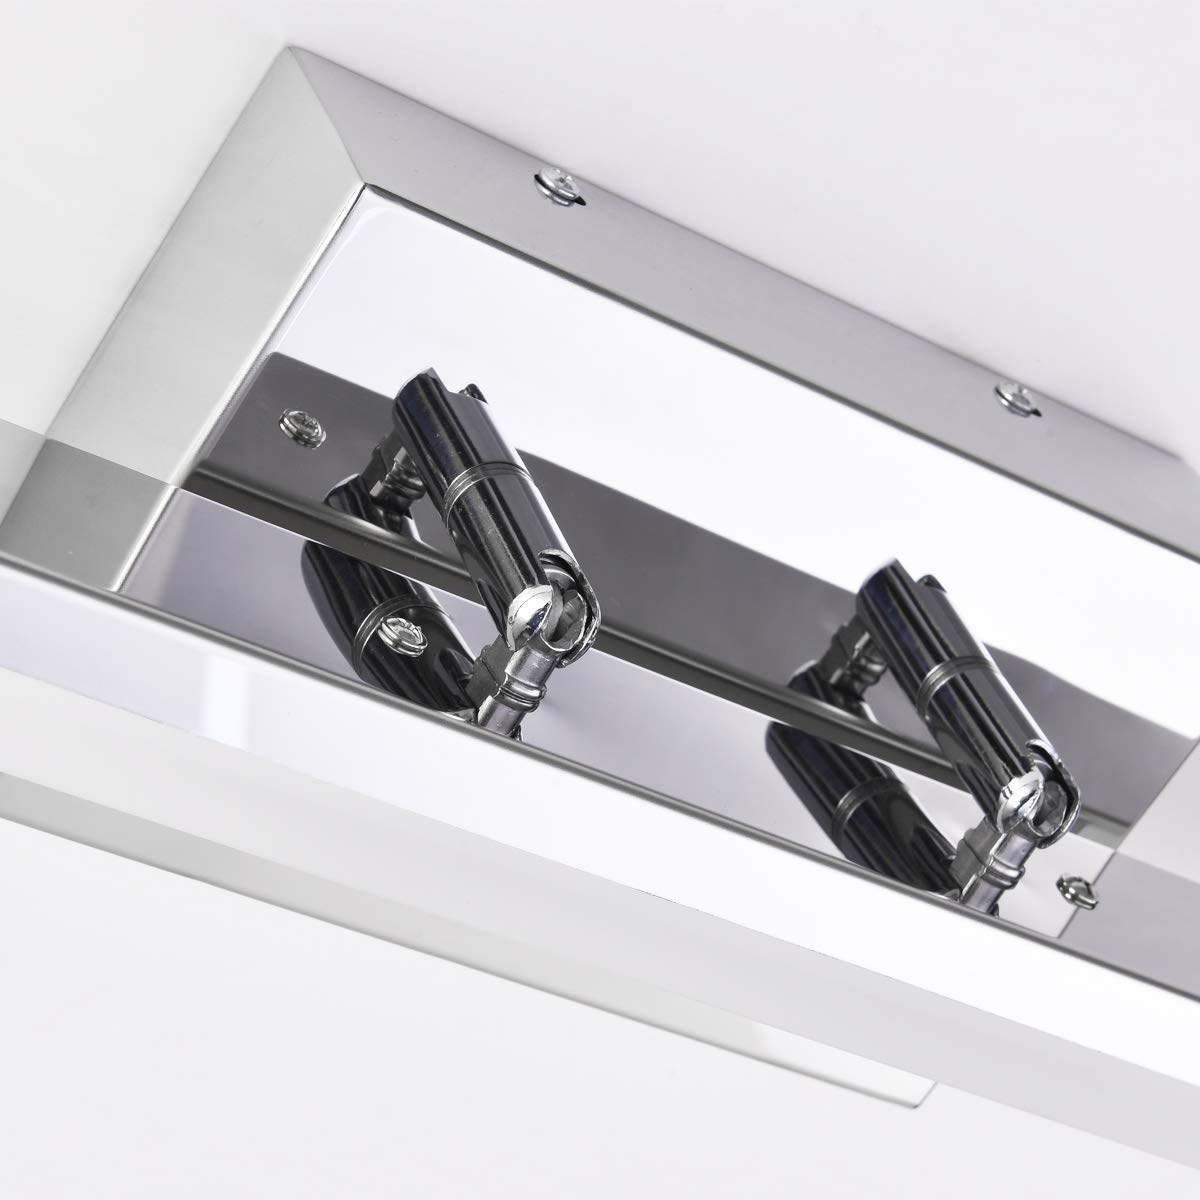 mirrea 36in Modern LED Vanity Light for Bathroom Lighting Dimmable 36w Cold White 5000K by mirrea (Image #4)